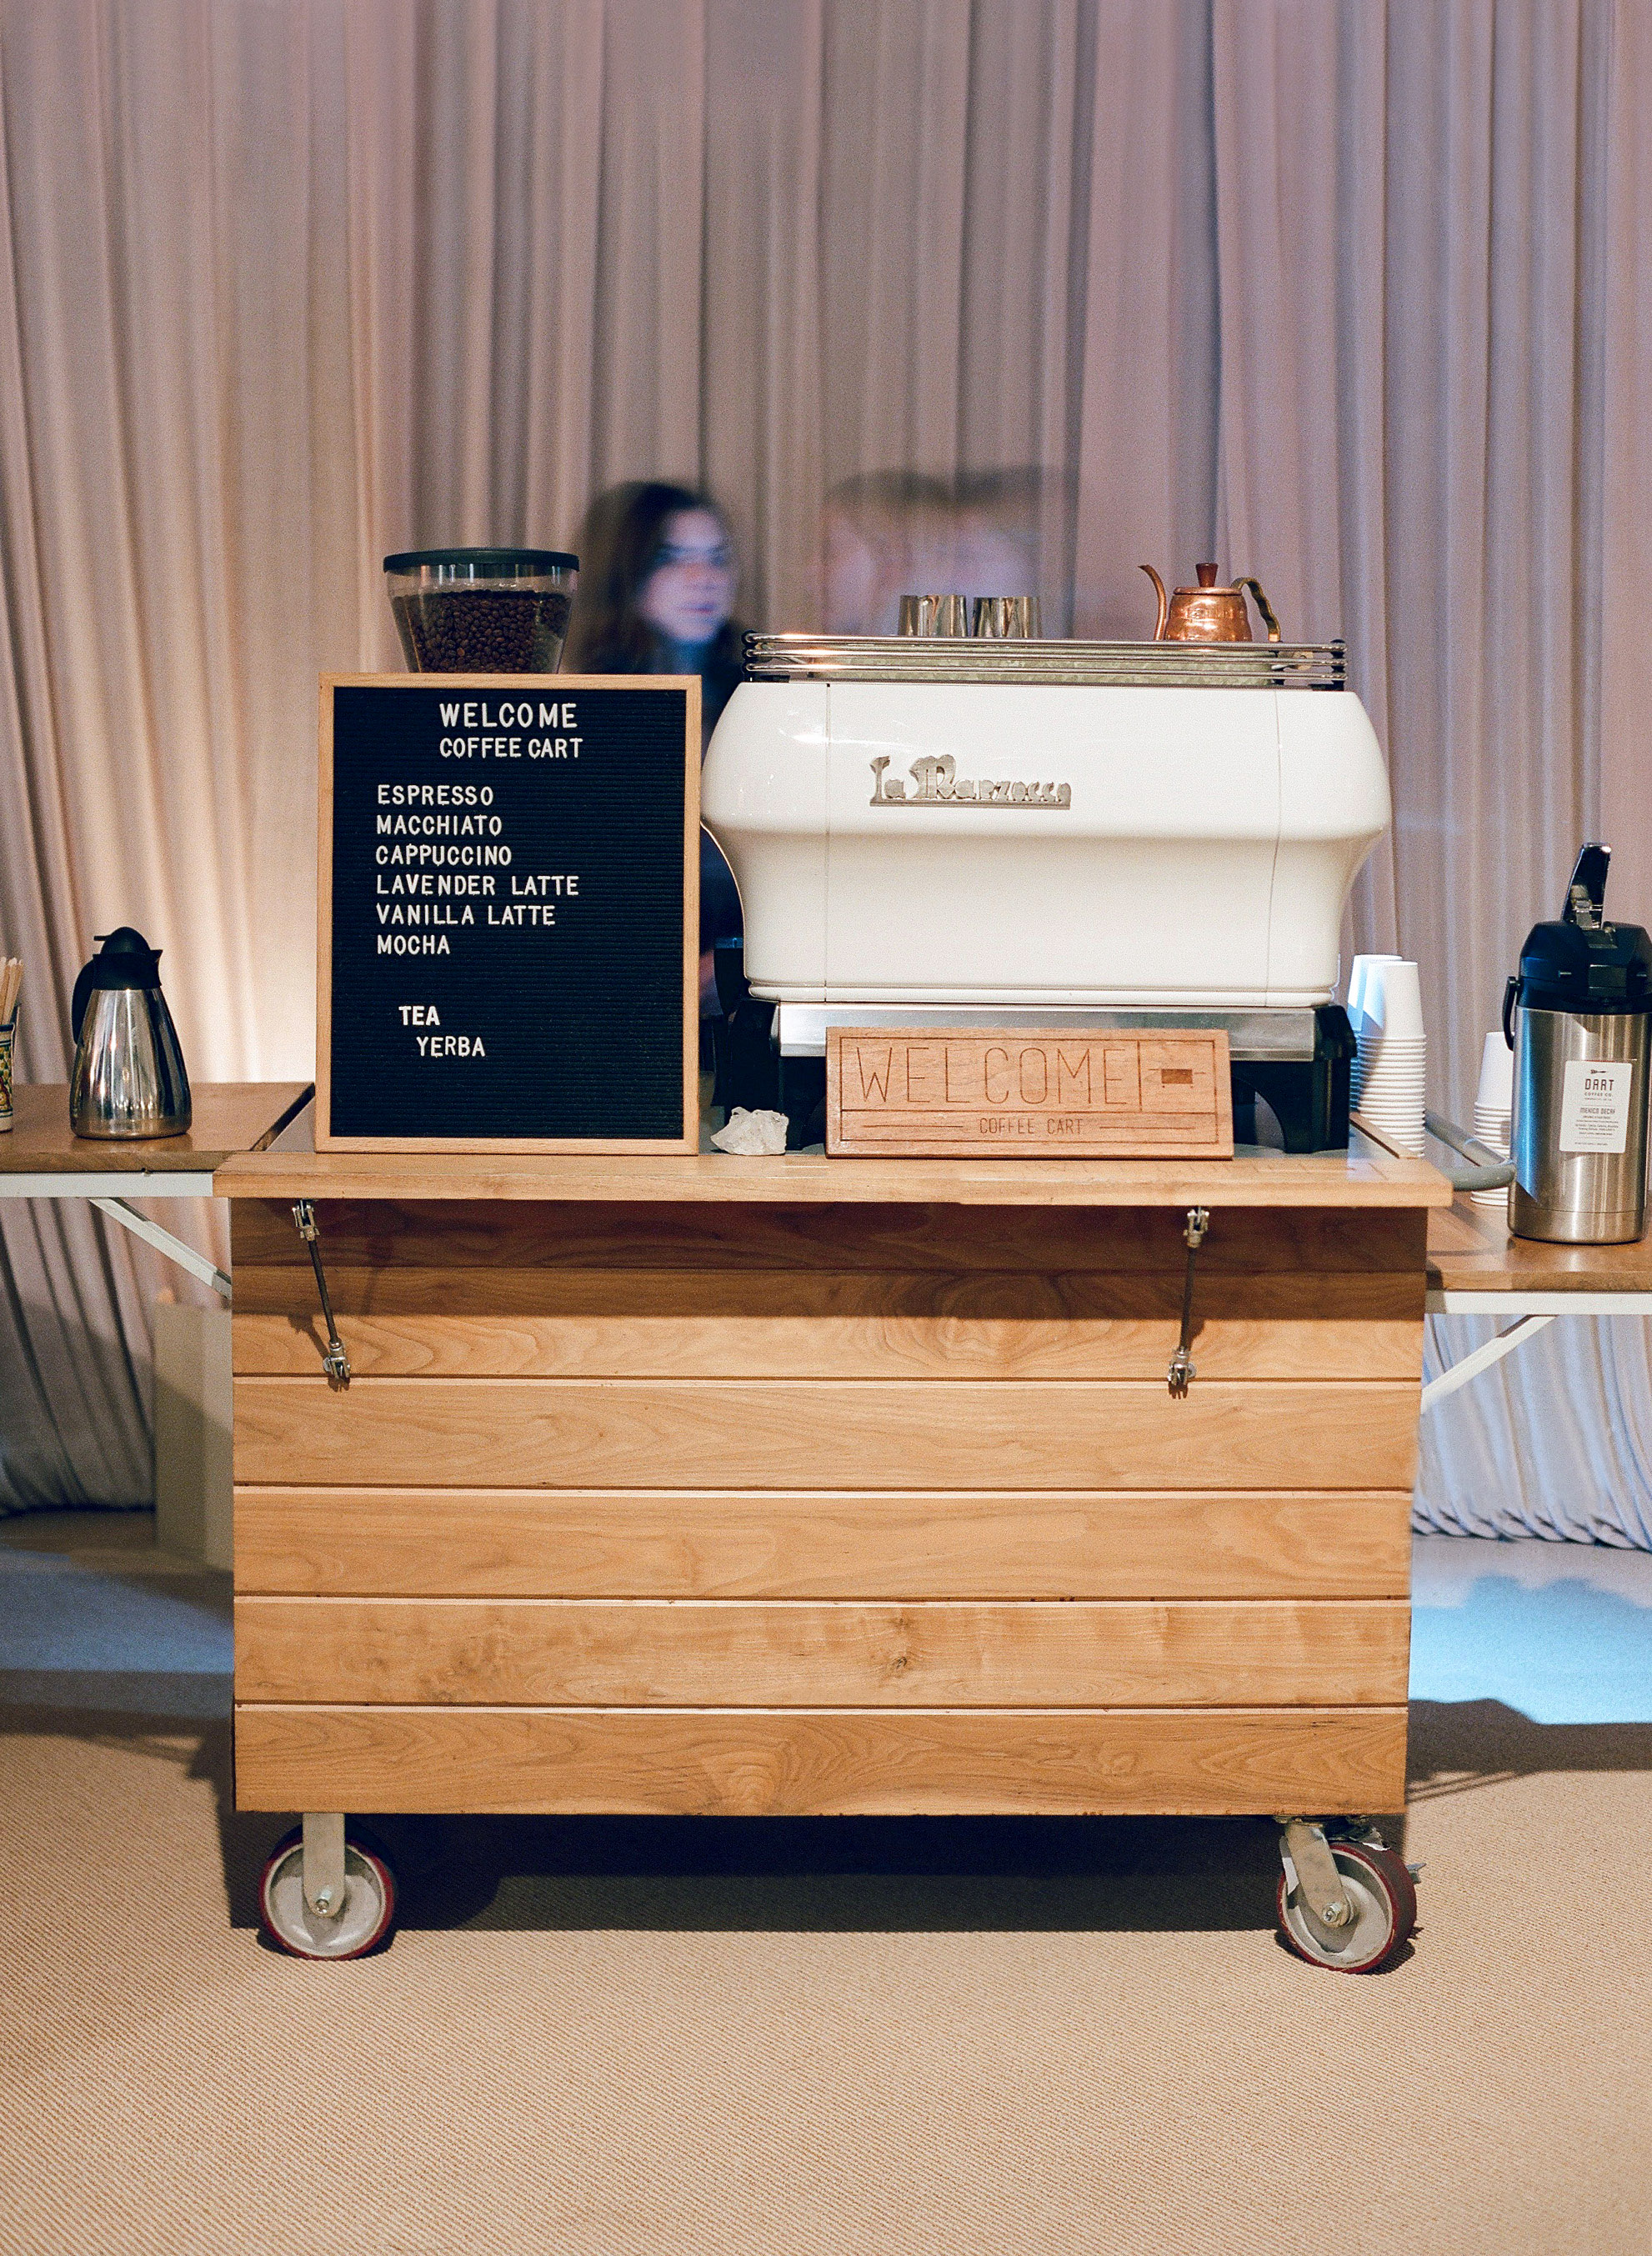 kelsey joc wedding santa barbara california coffee cart